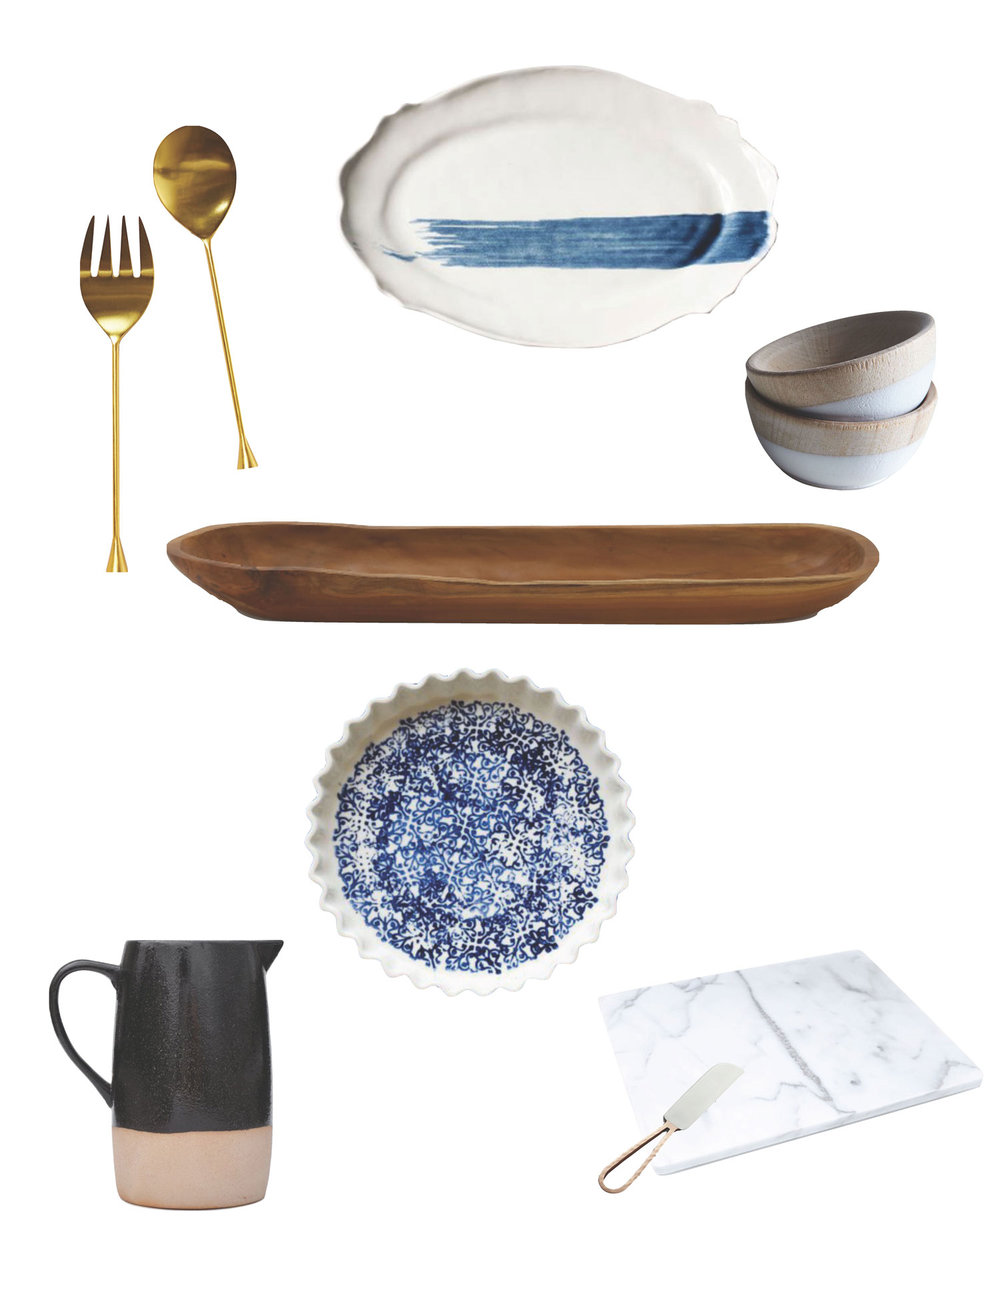 We've+scouted+our+top+serve-ware+picks+that+are+practical+for+any+gathering+and+maintain+a+beautiful+design+aesthetic.jpg